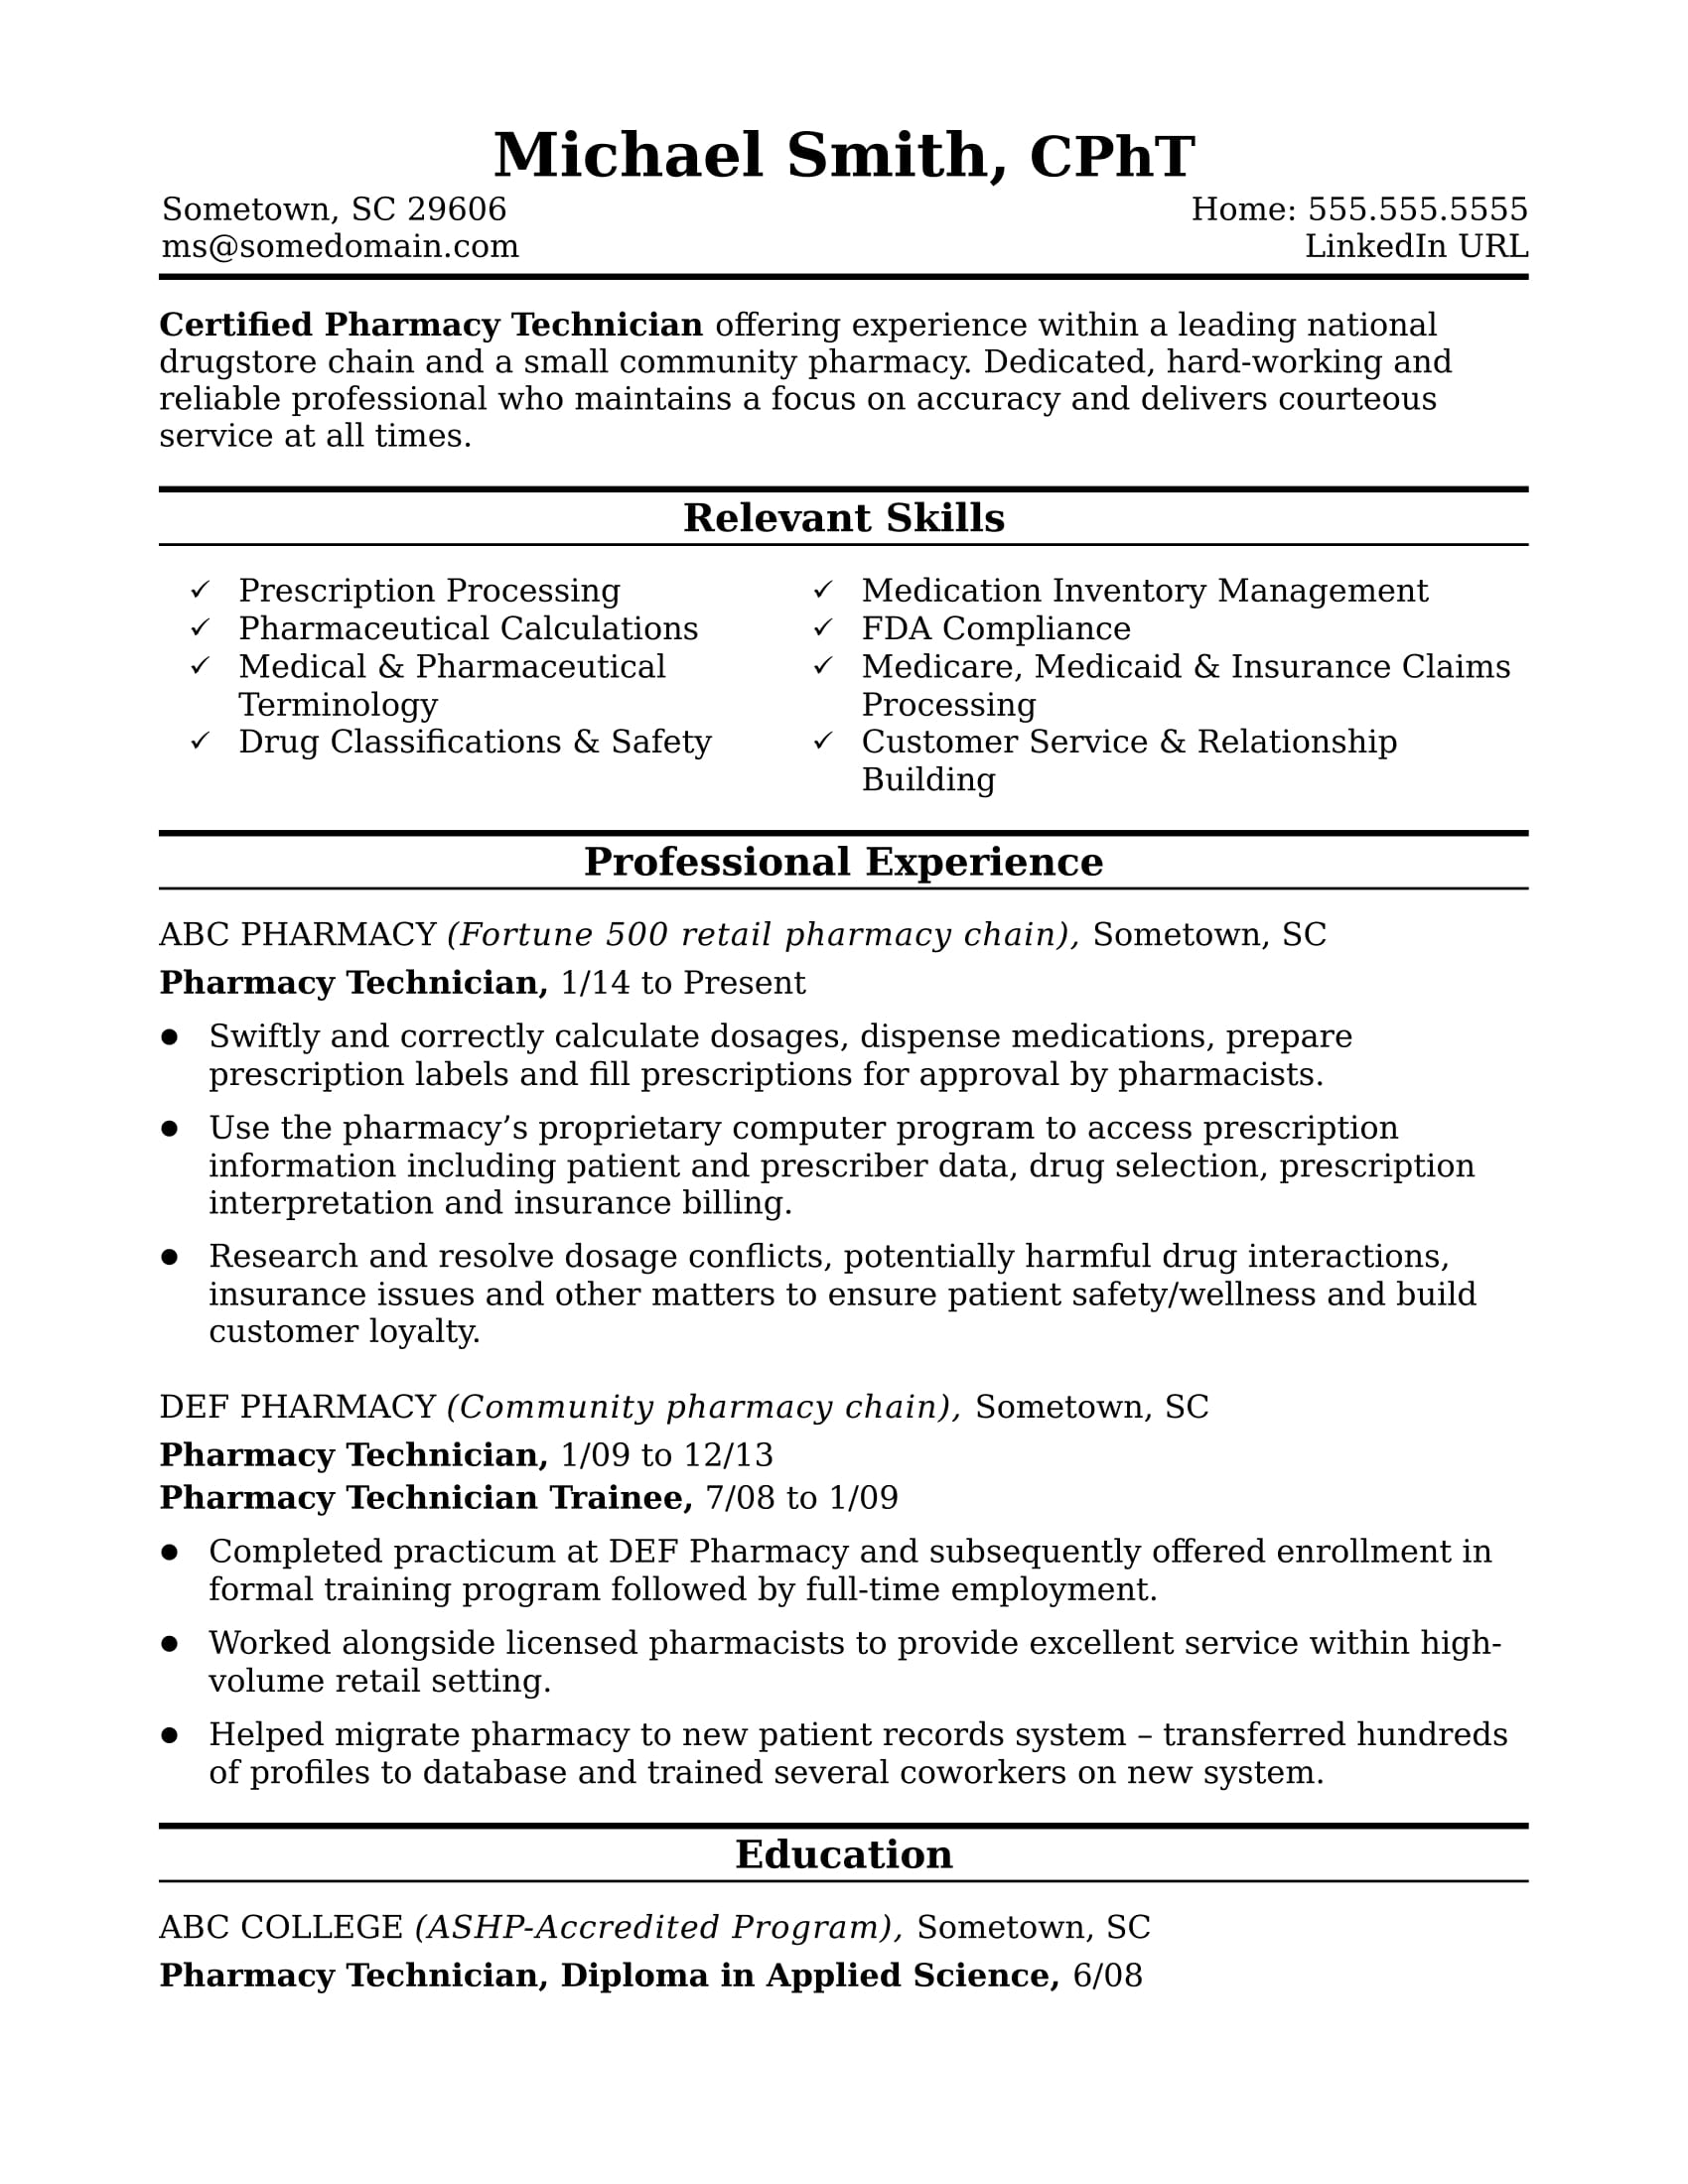 Marvelous Sample Resume For A Pharmacy Technician With Resume Pharmacy Technician